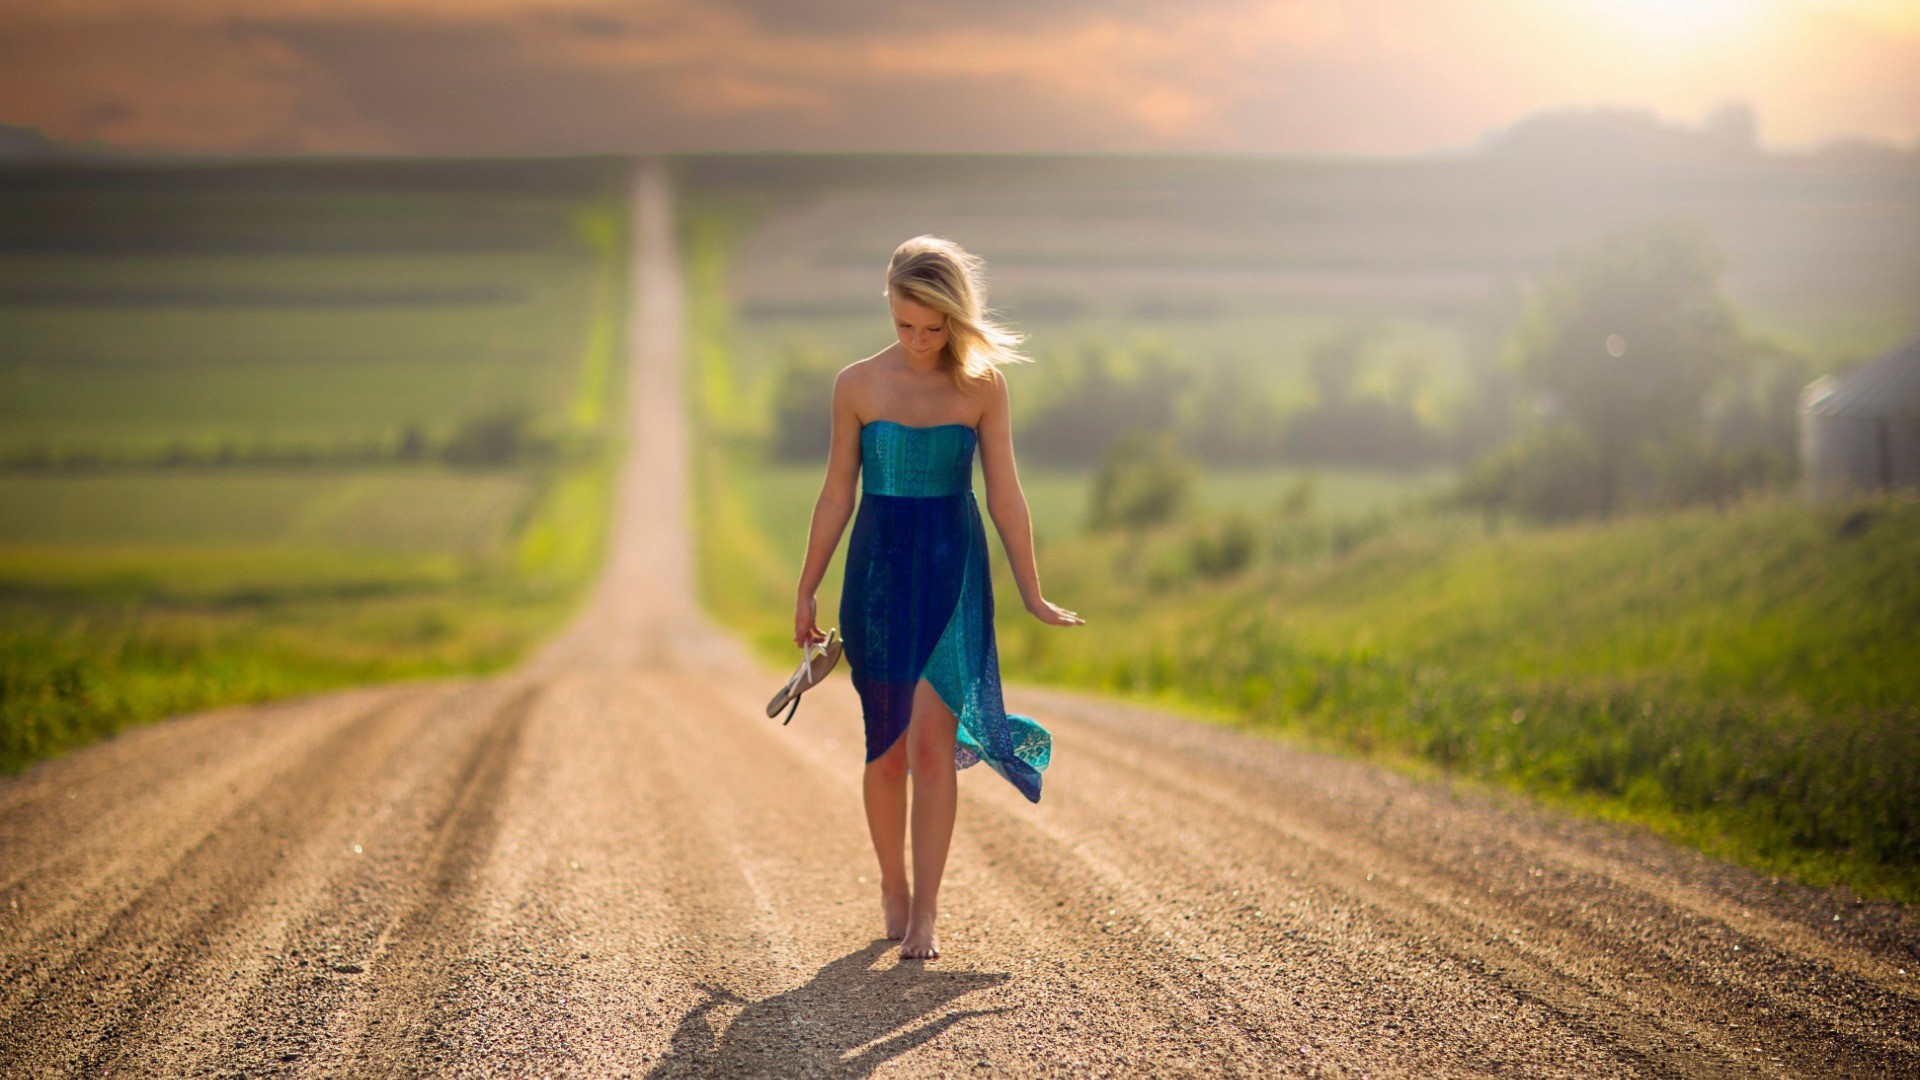 3840x1080 Hd Wallpapers Sad Quote Women Blonde Road Nature Landscape Barefoot Nebraska Jake